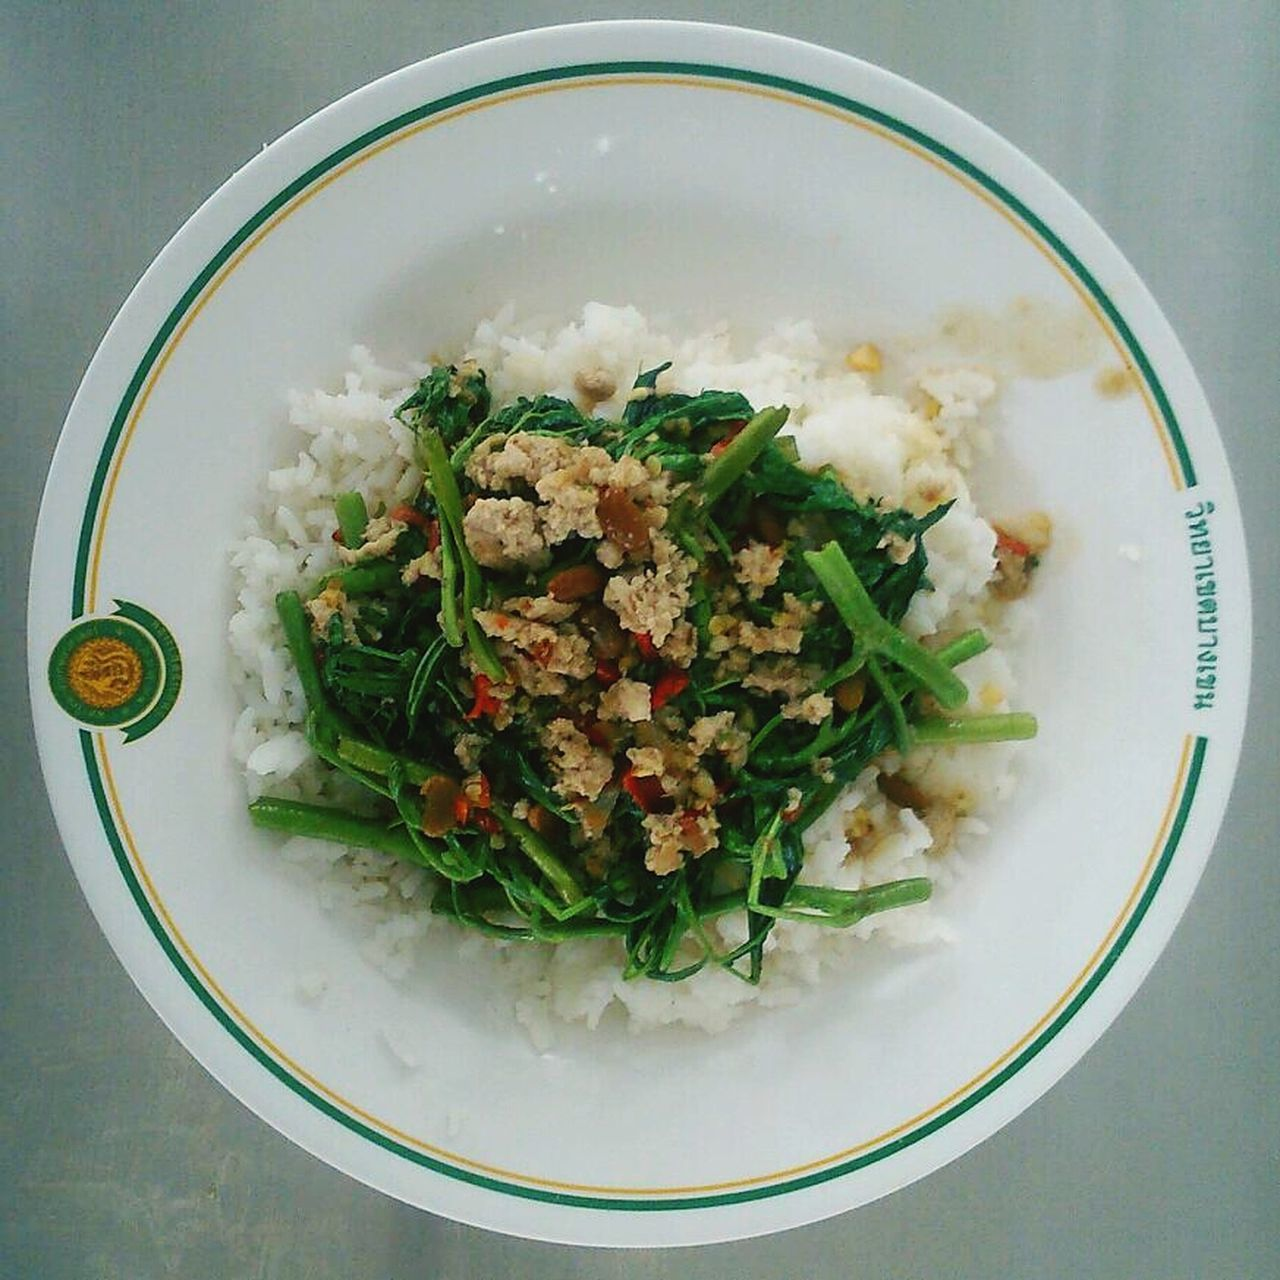 Thai Common Food is Fired Vegetables with meat.